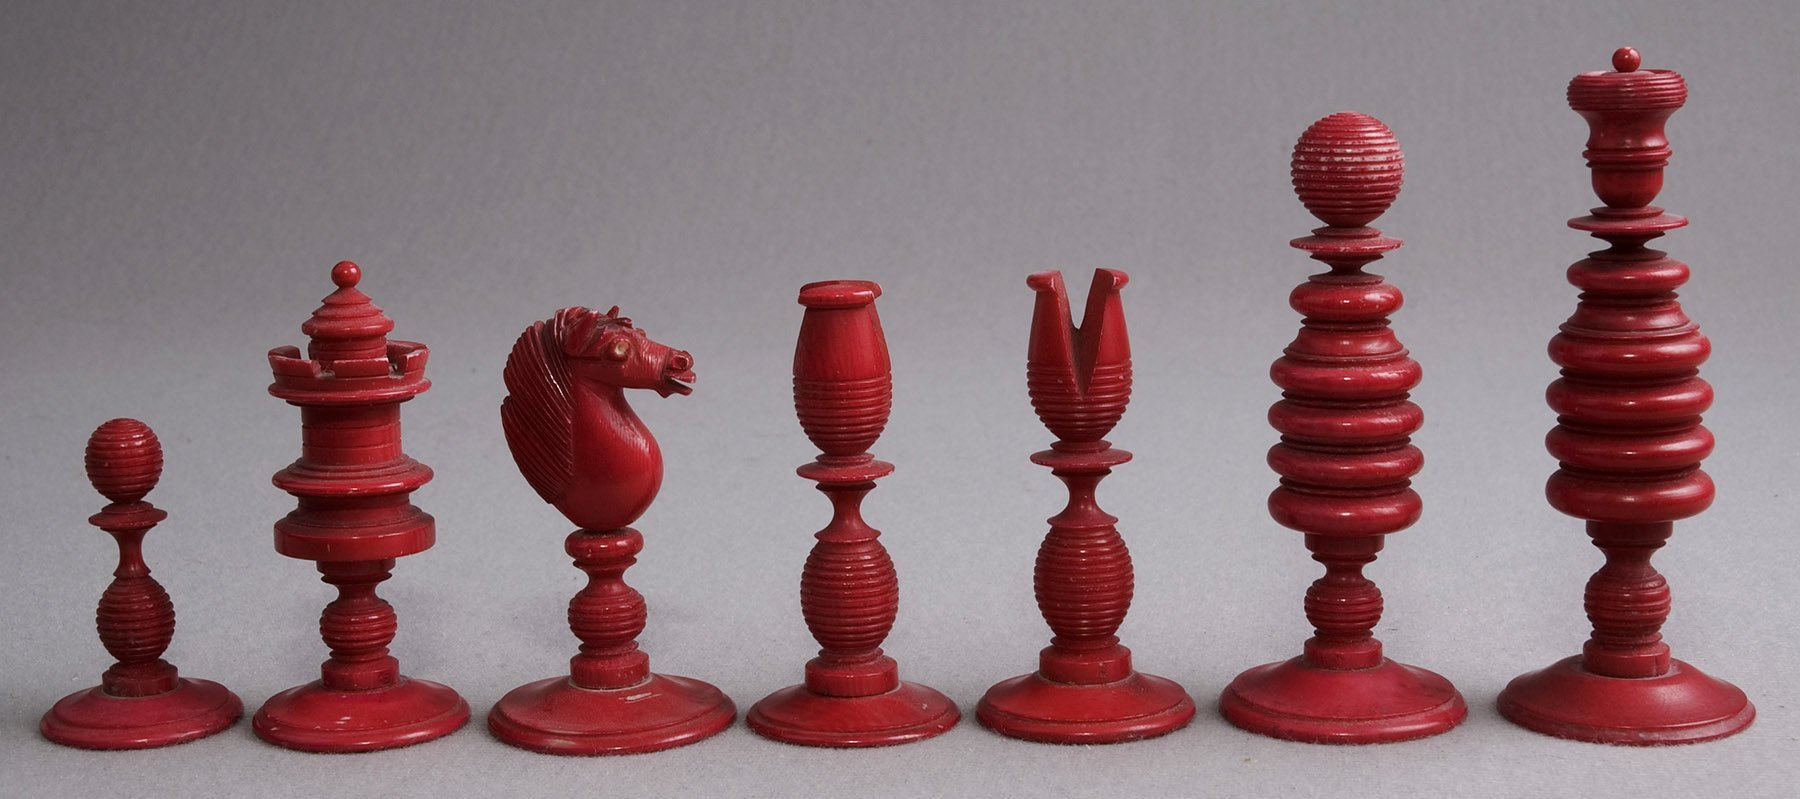 Calvert decorative type ii english playing chess set - Ornate chess sets ...